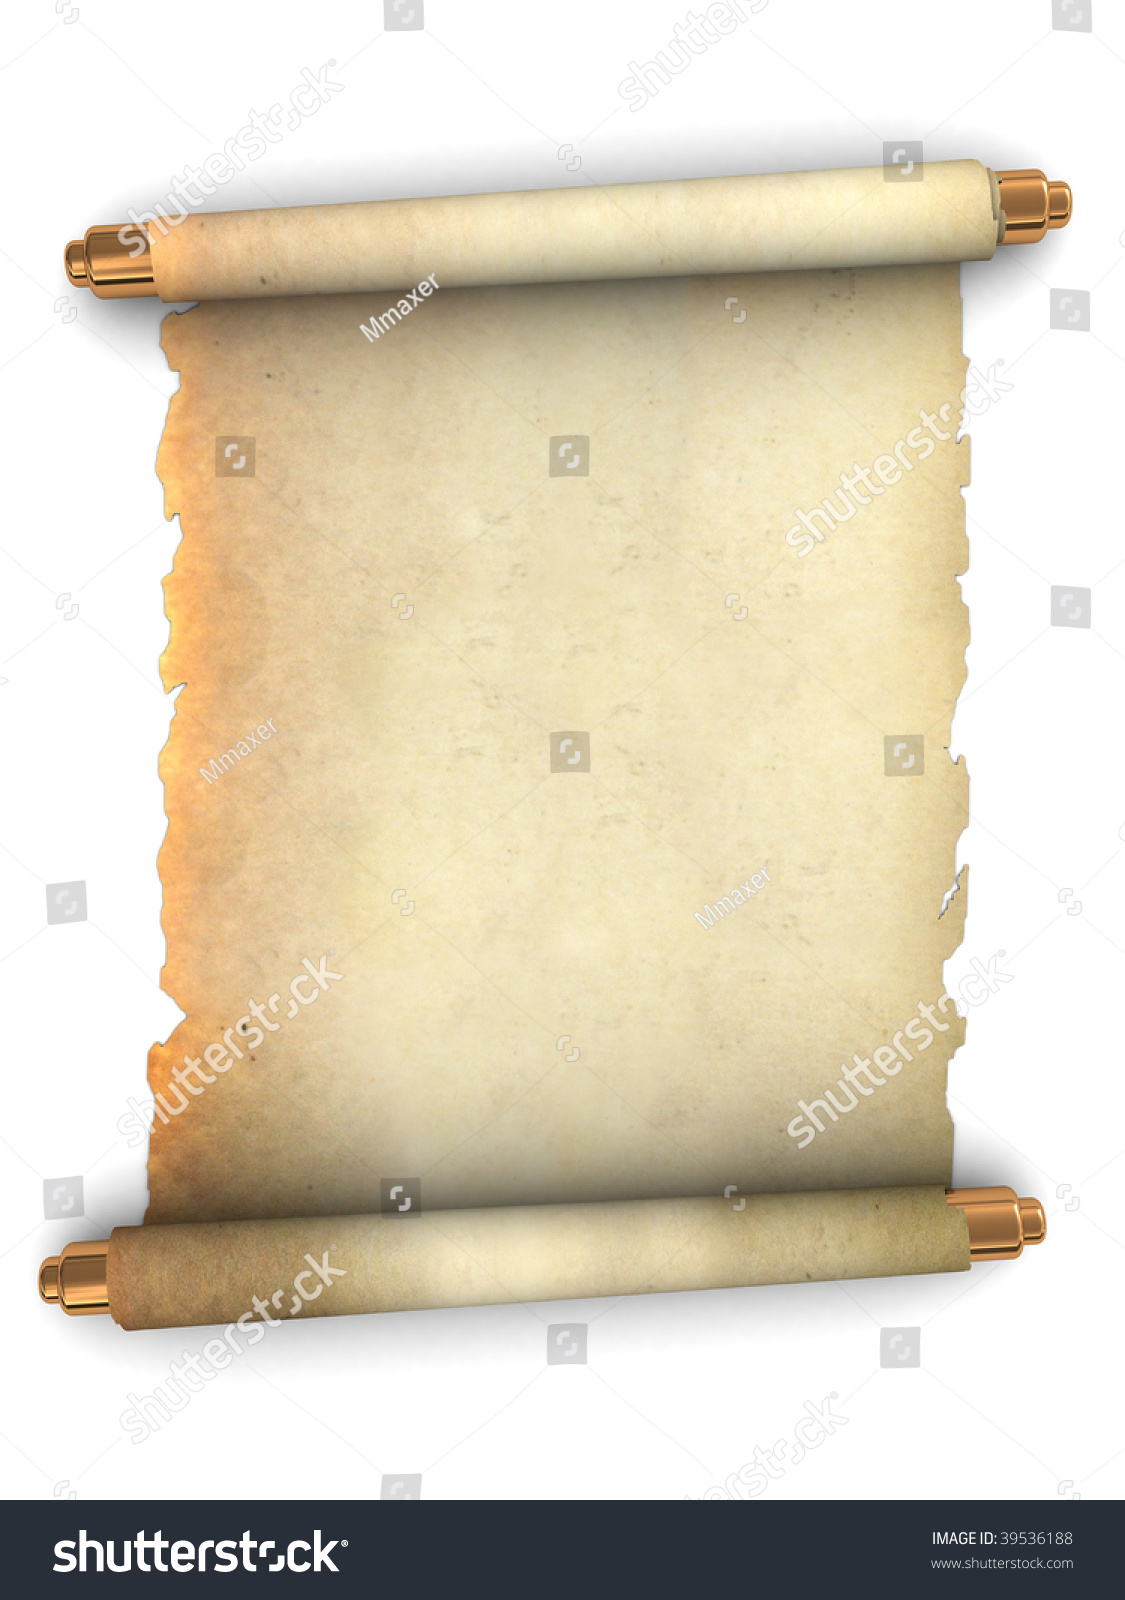 3d Scroll Of Parchment Photo: 3d Illustration Of An Ancient Paper Scroll Over White